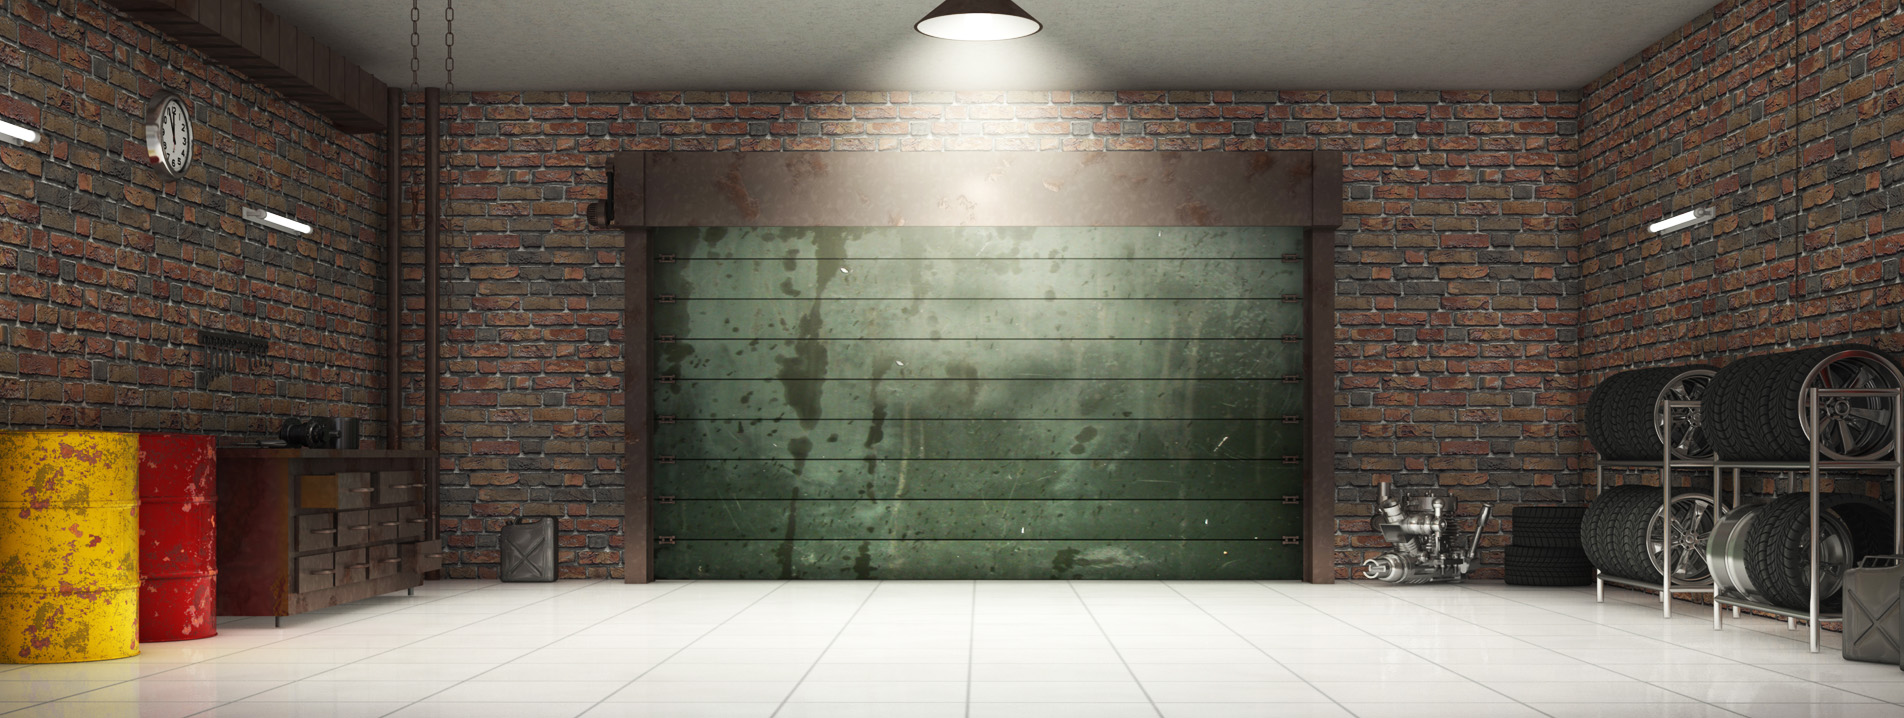 All County Garage Doors, Renton, WA 425-429-7837